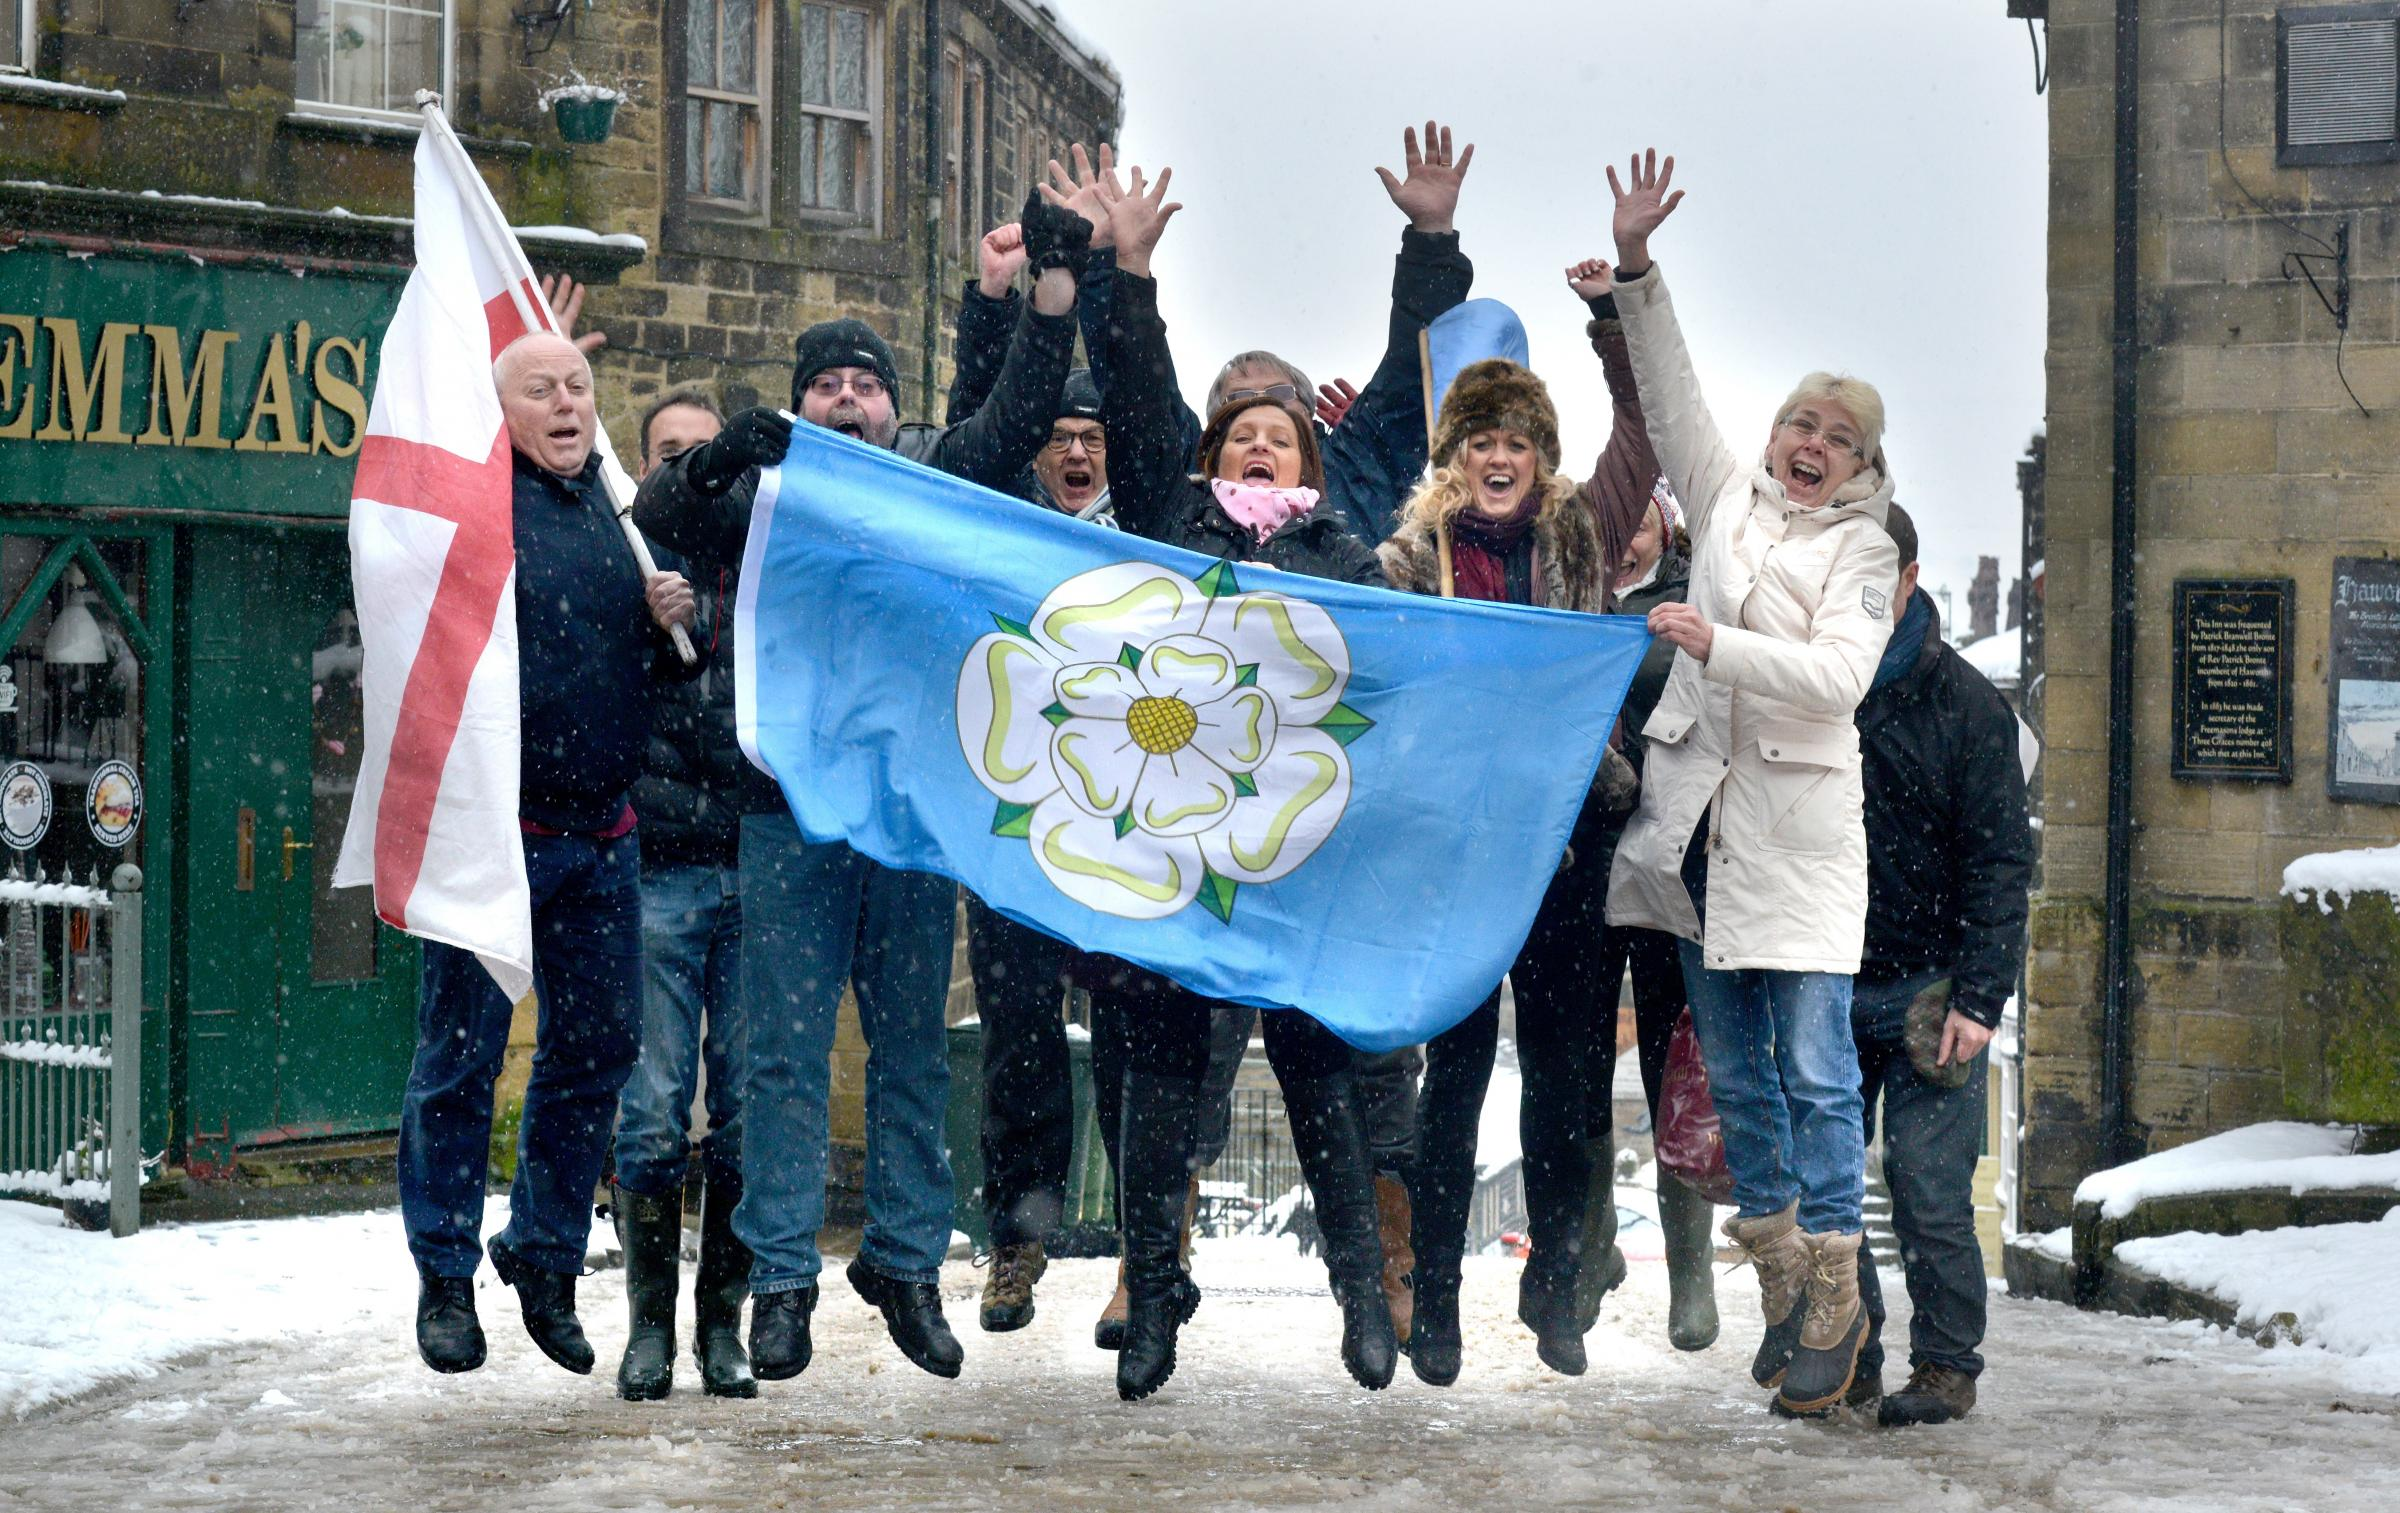 In snowy January Haworth locals were delighted to learn the village would be on the Tour de Yorkshire for 2015